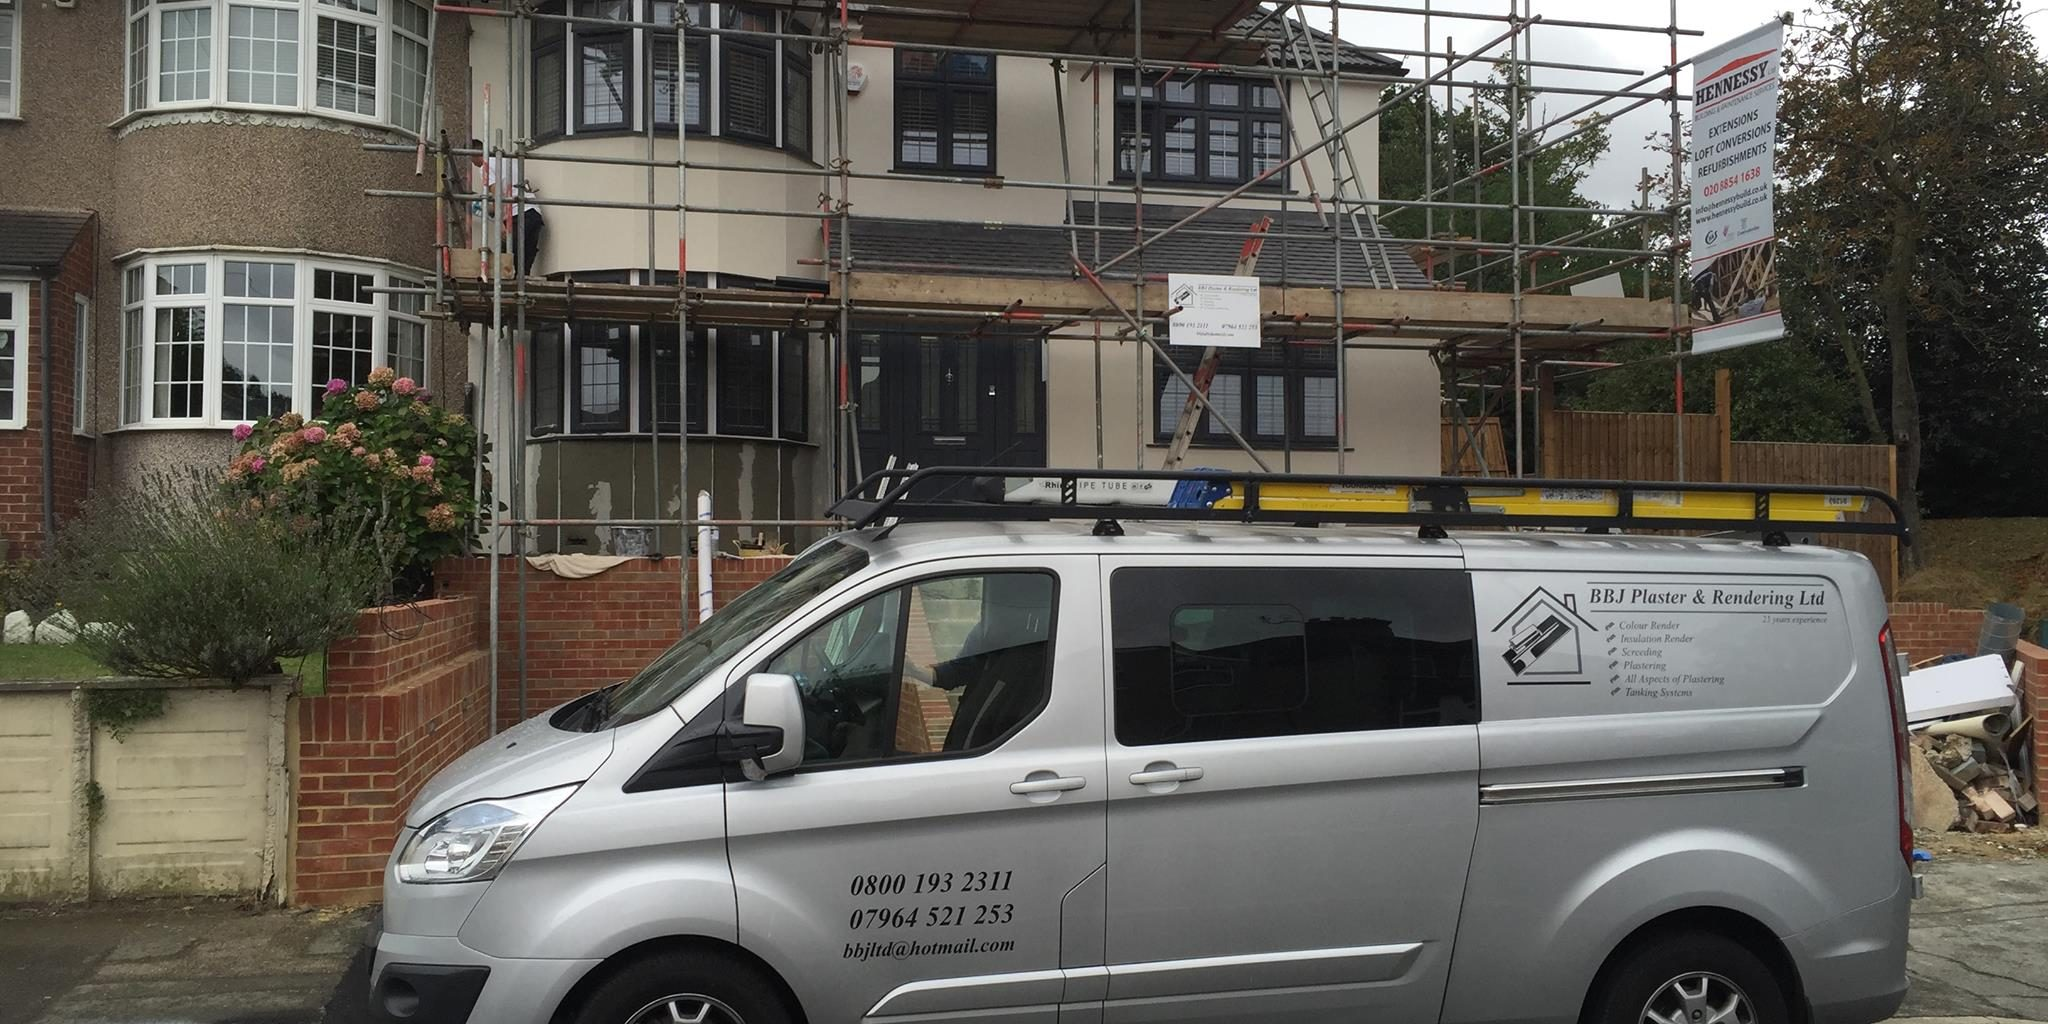 Parked BBJ Plaster & Rendering van outside a large house with its walls being skimmed and rendered